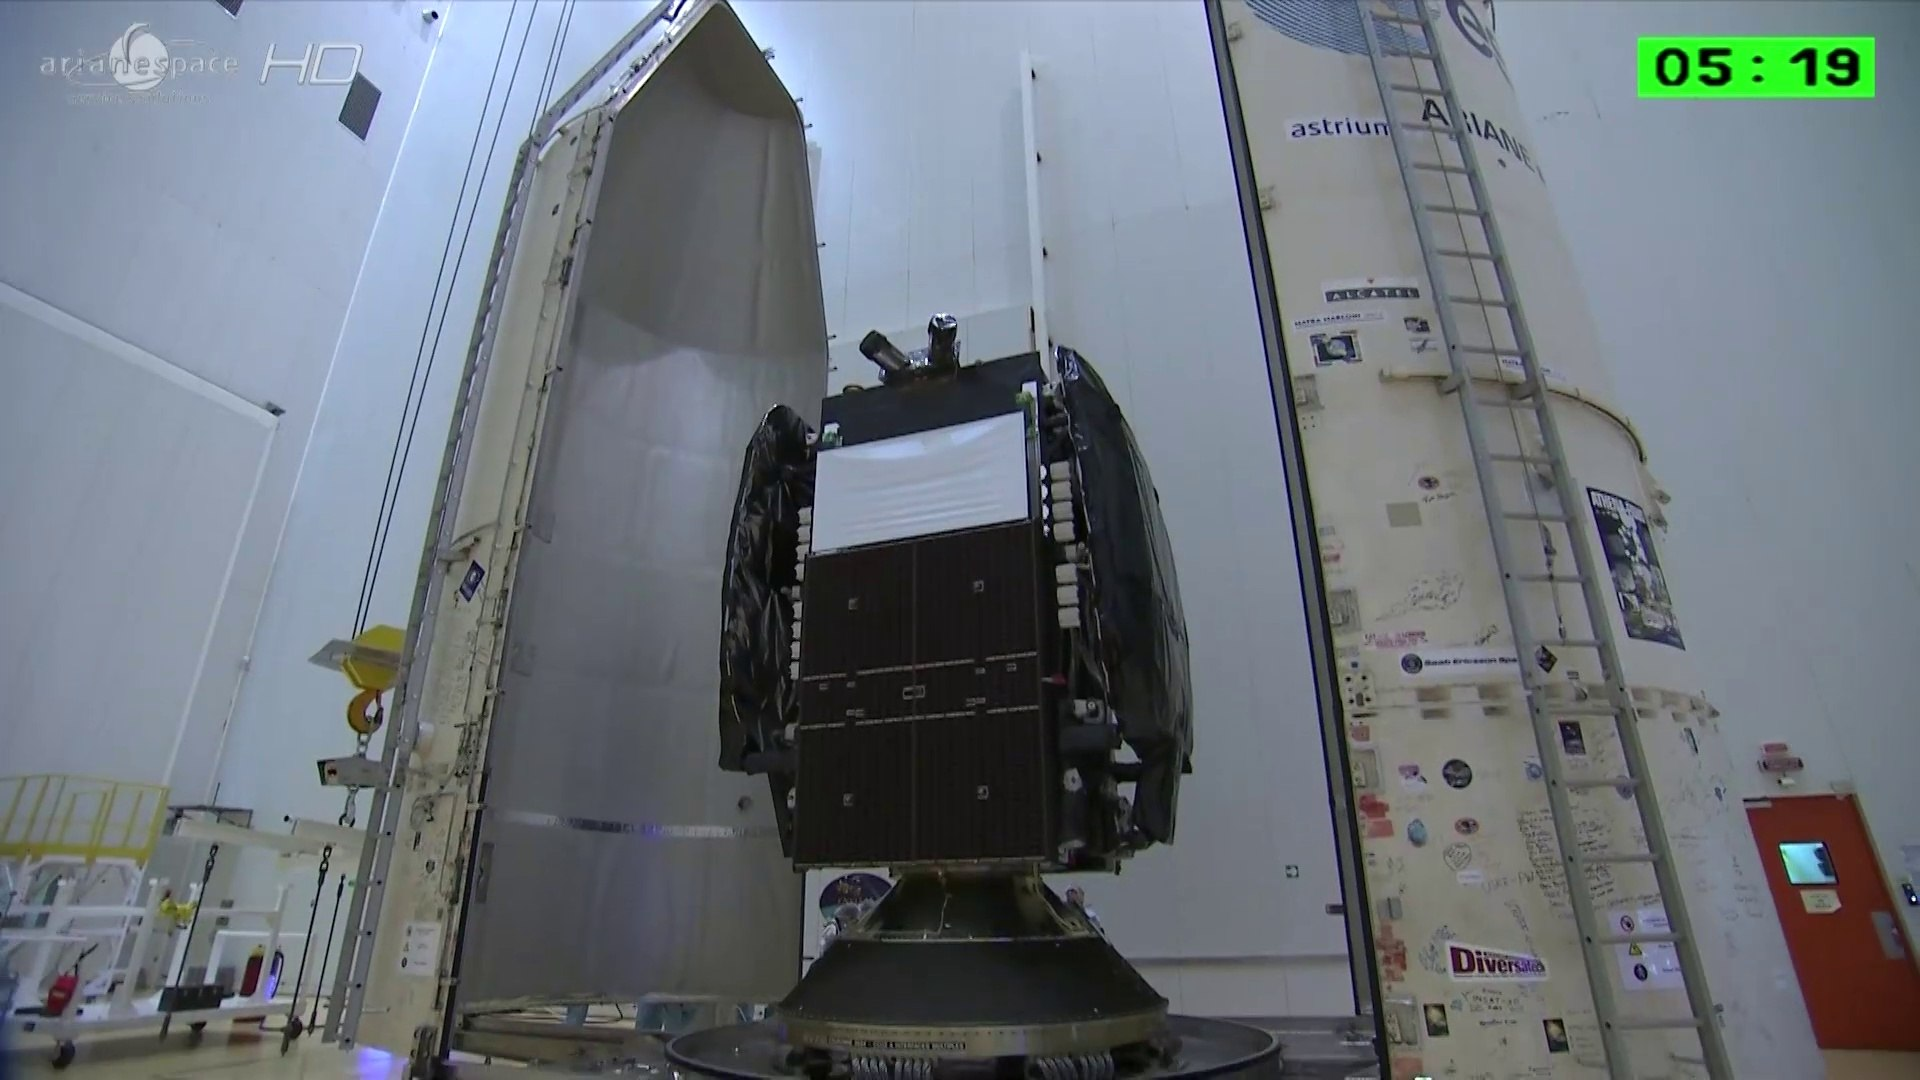 [Ariane 5] Processing Highlights for Ariane 5 with Astra 5B & Amazonas 4A